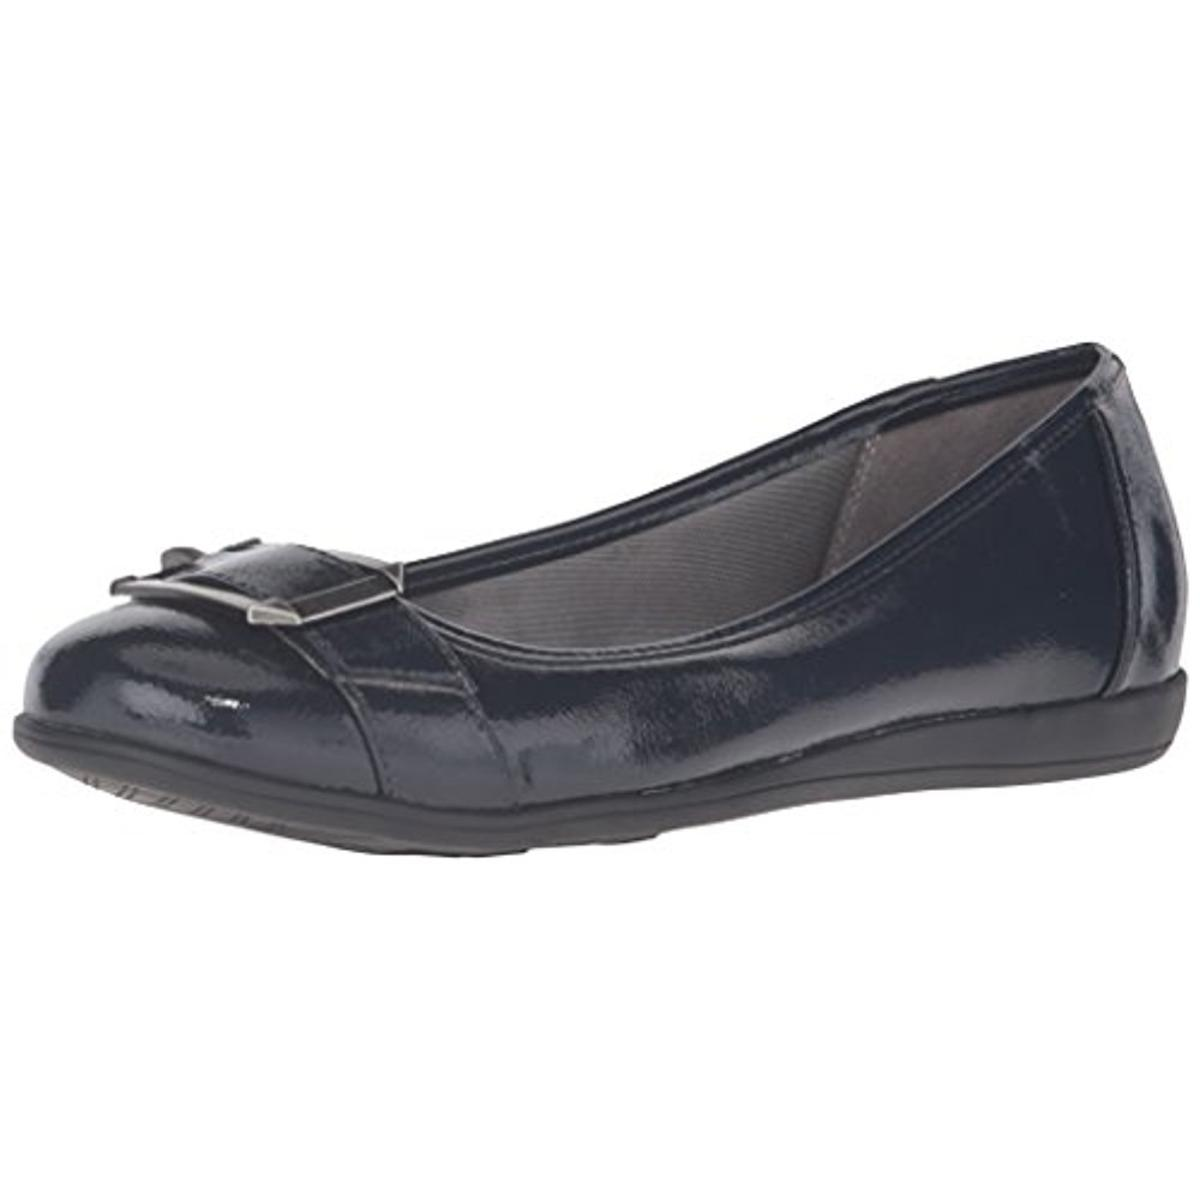 LifeStride Womens Carousel Faux Leather Shimmer Flats